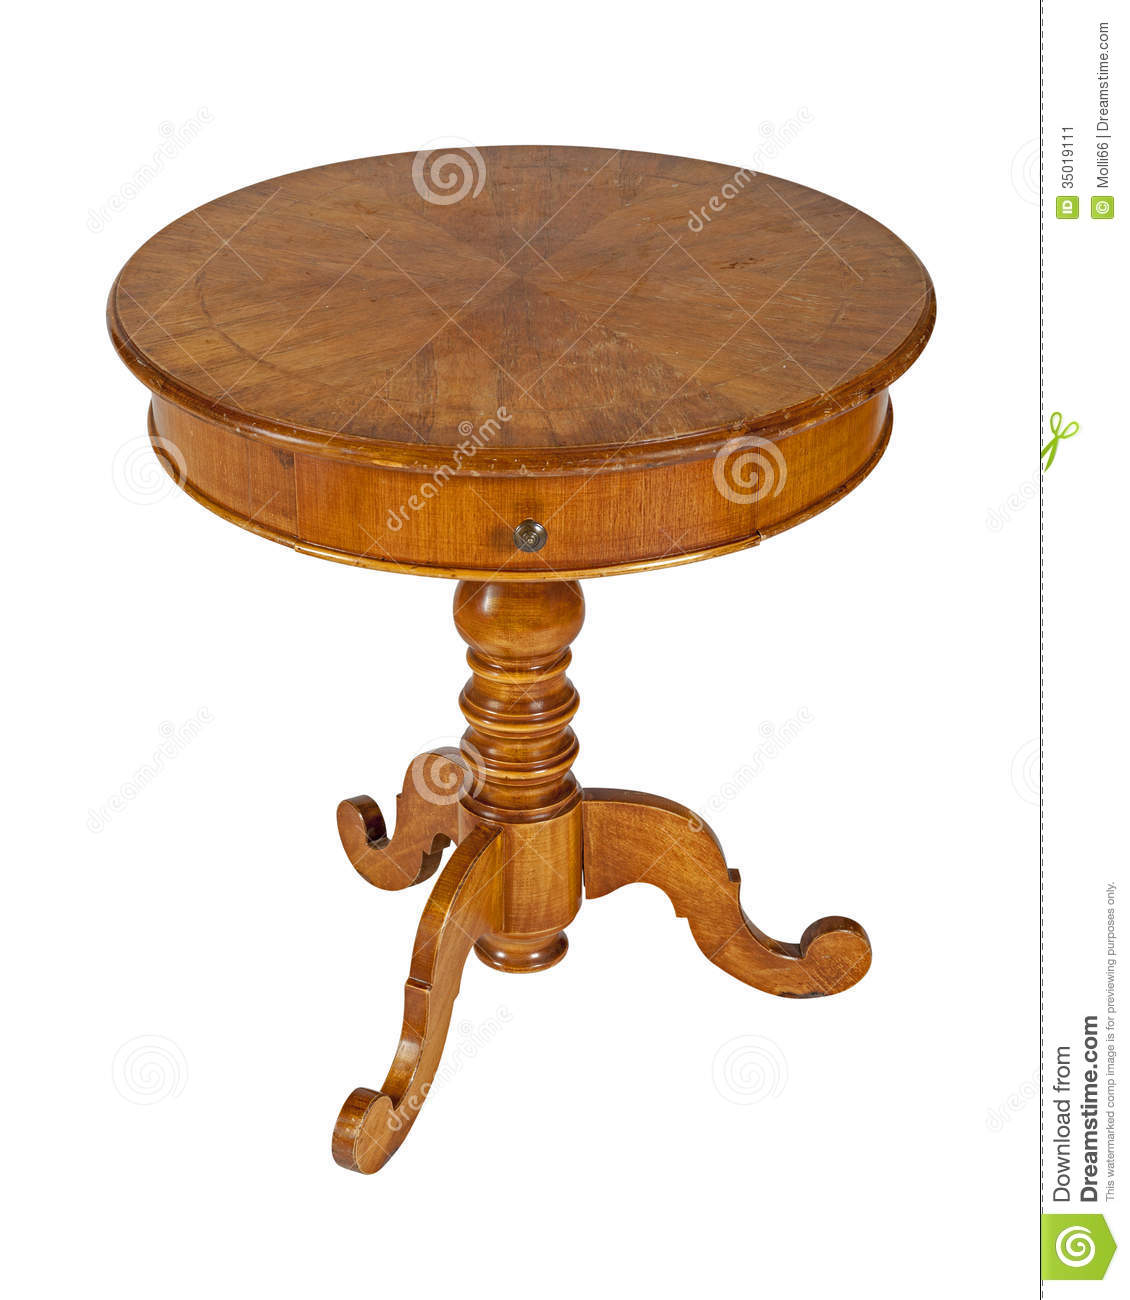 Vieille table ronde en bois sur le blanc image stock for Table ronde en bois